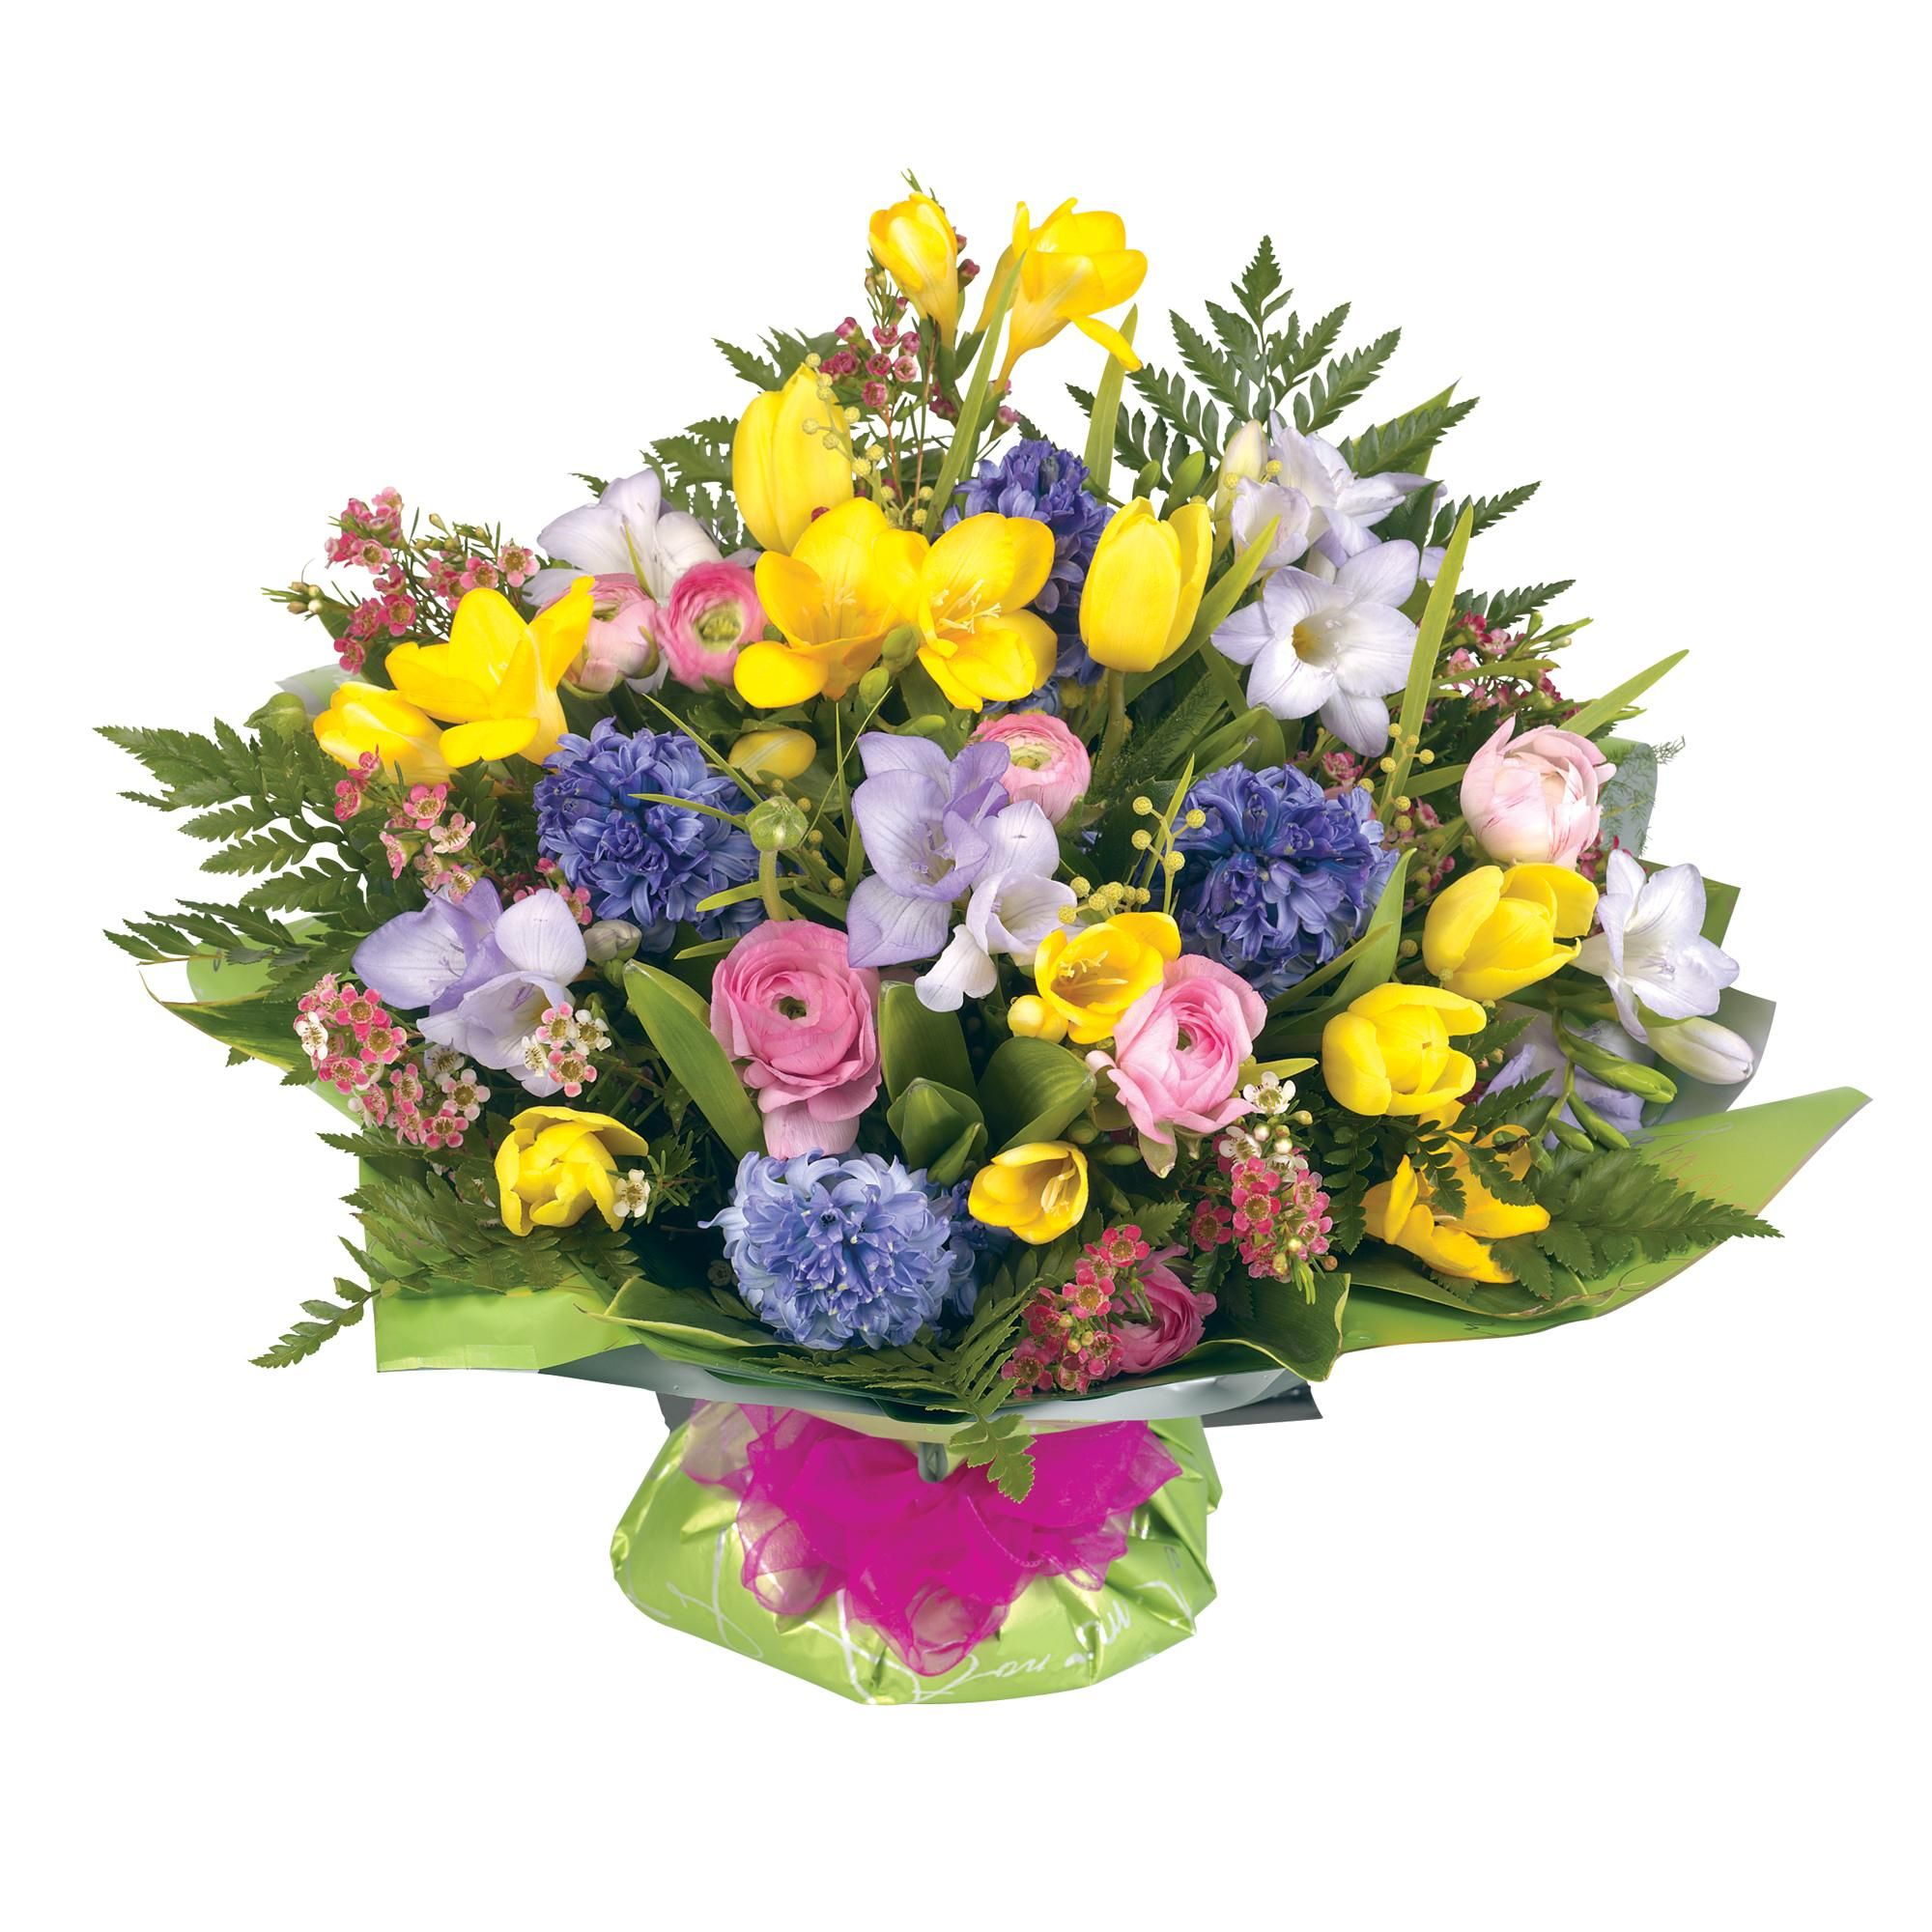 Flowers Bouquet Birthday Hd Wallpapers Spring Flower Bouquet Birthday Flowers Bouquet Flowers Bouquet